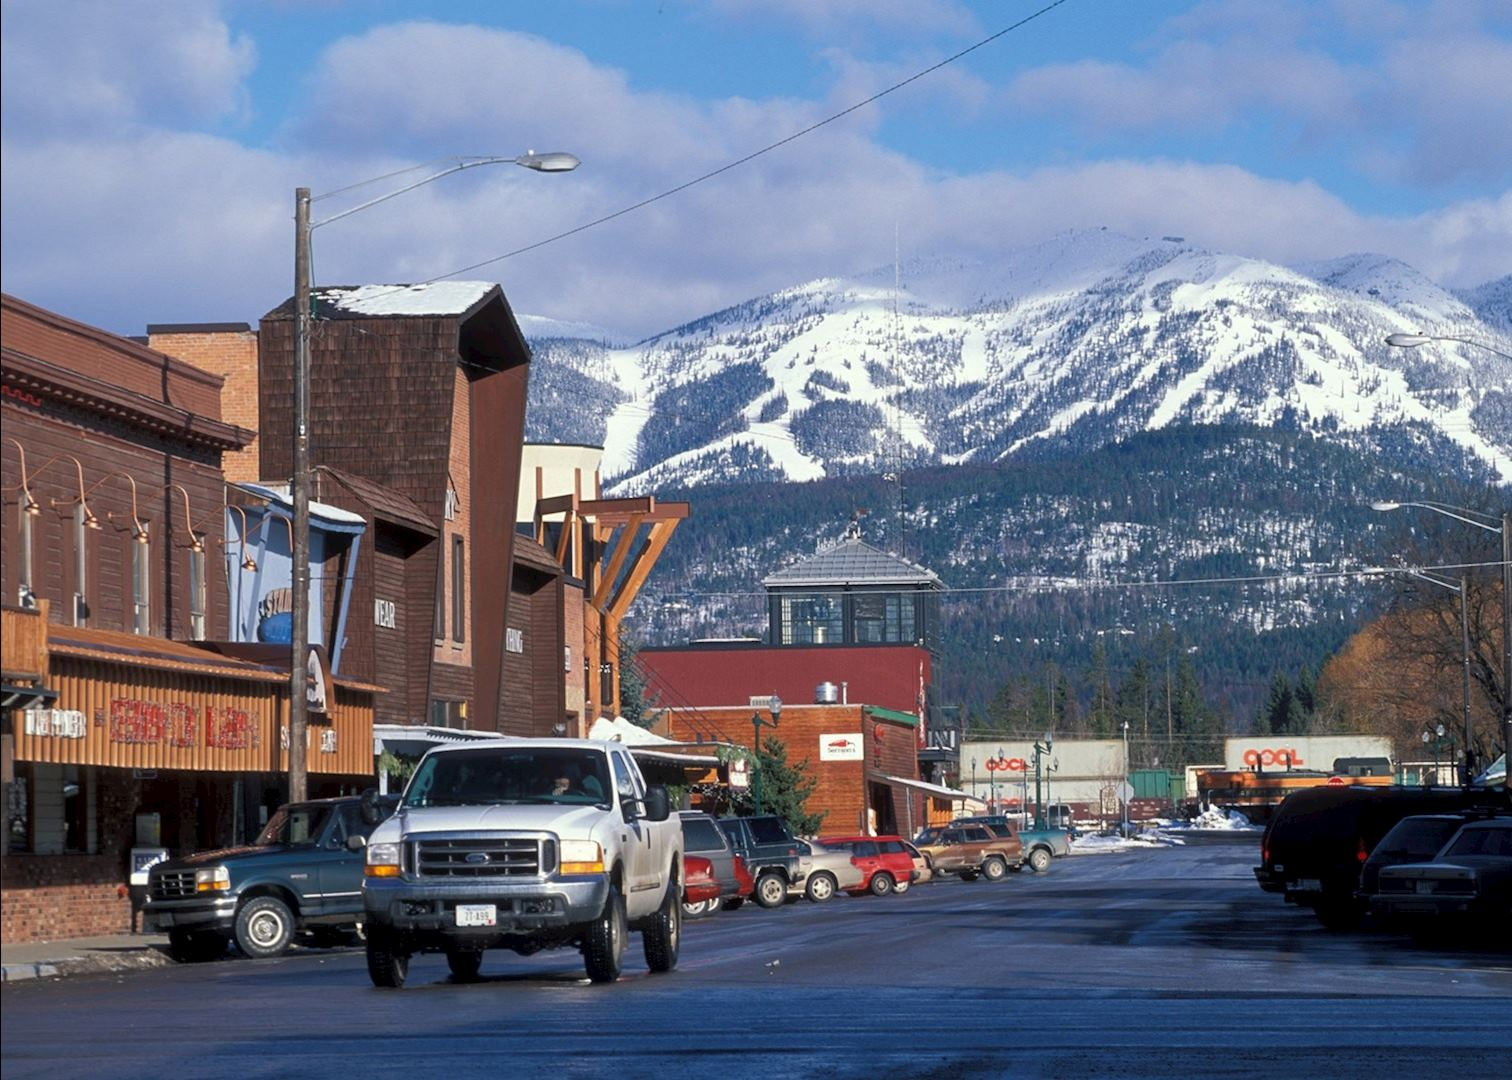 Whitefish hotels downtown - Park n fly economy